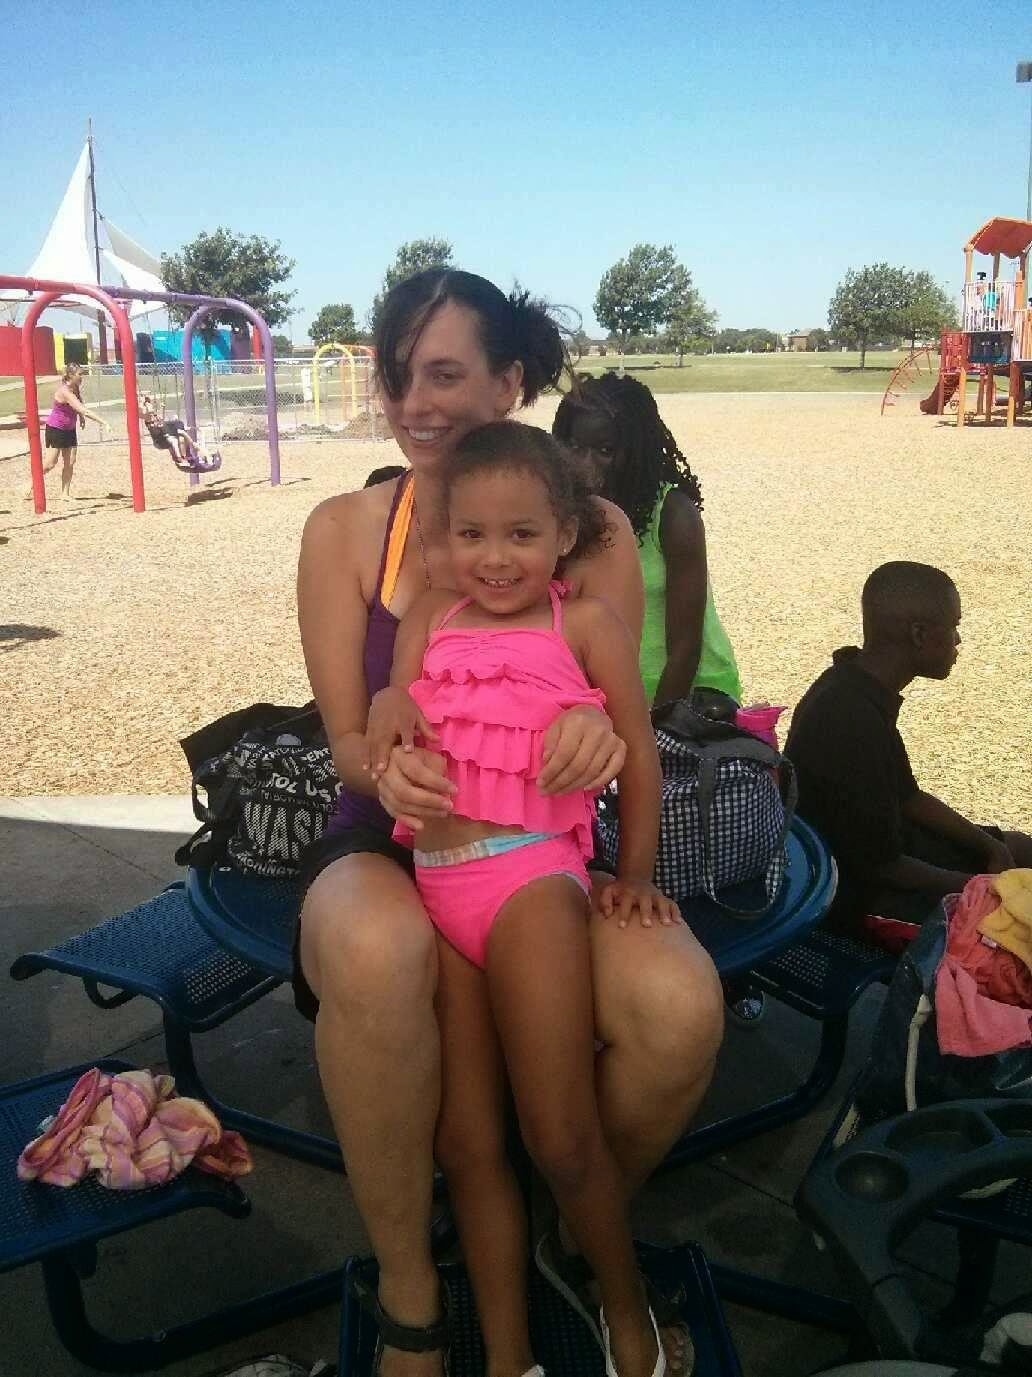 Image is a small medium skinned smiling girl with curly dark hair smiling standing in front of a lighter medium skinned female presenting person with dark hair in pigtails, also smiling. The little girl is wearing a hot pink swimsuit; the adult is wearing an orange swimsuit & purple tank top.